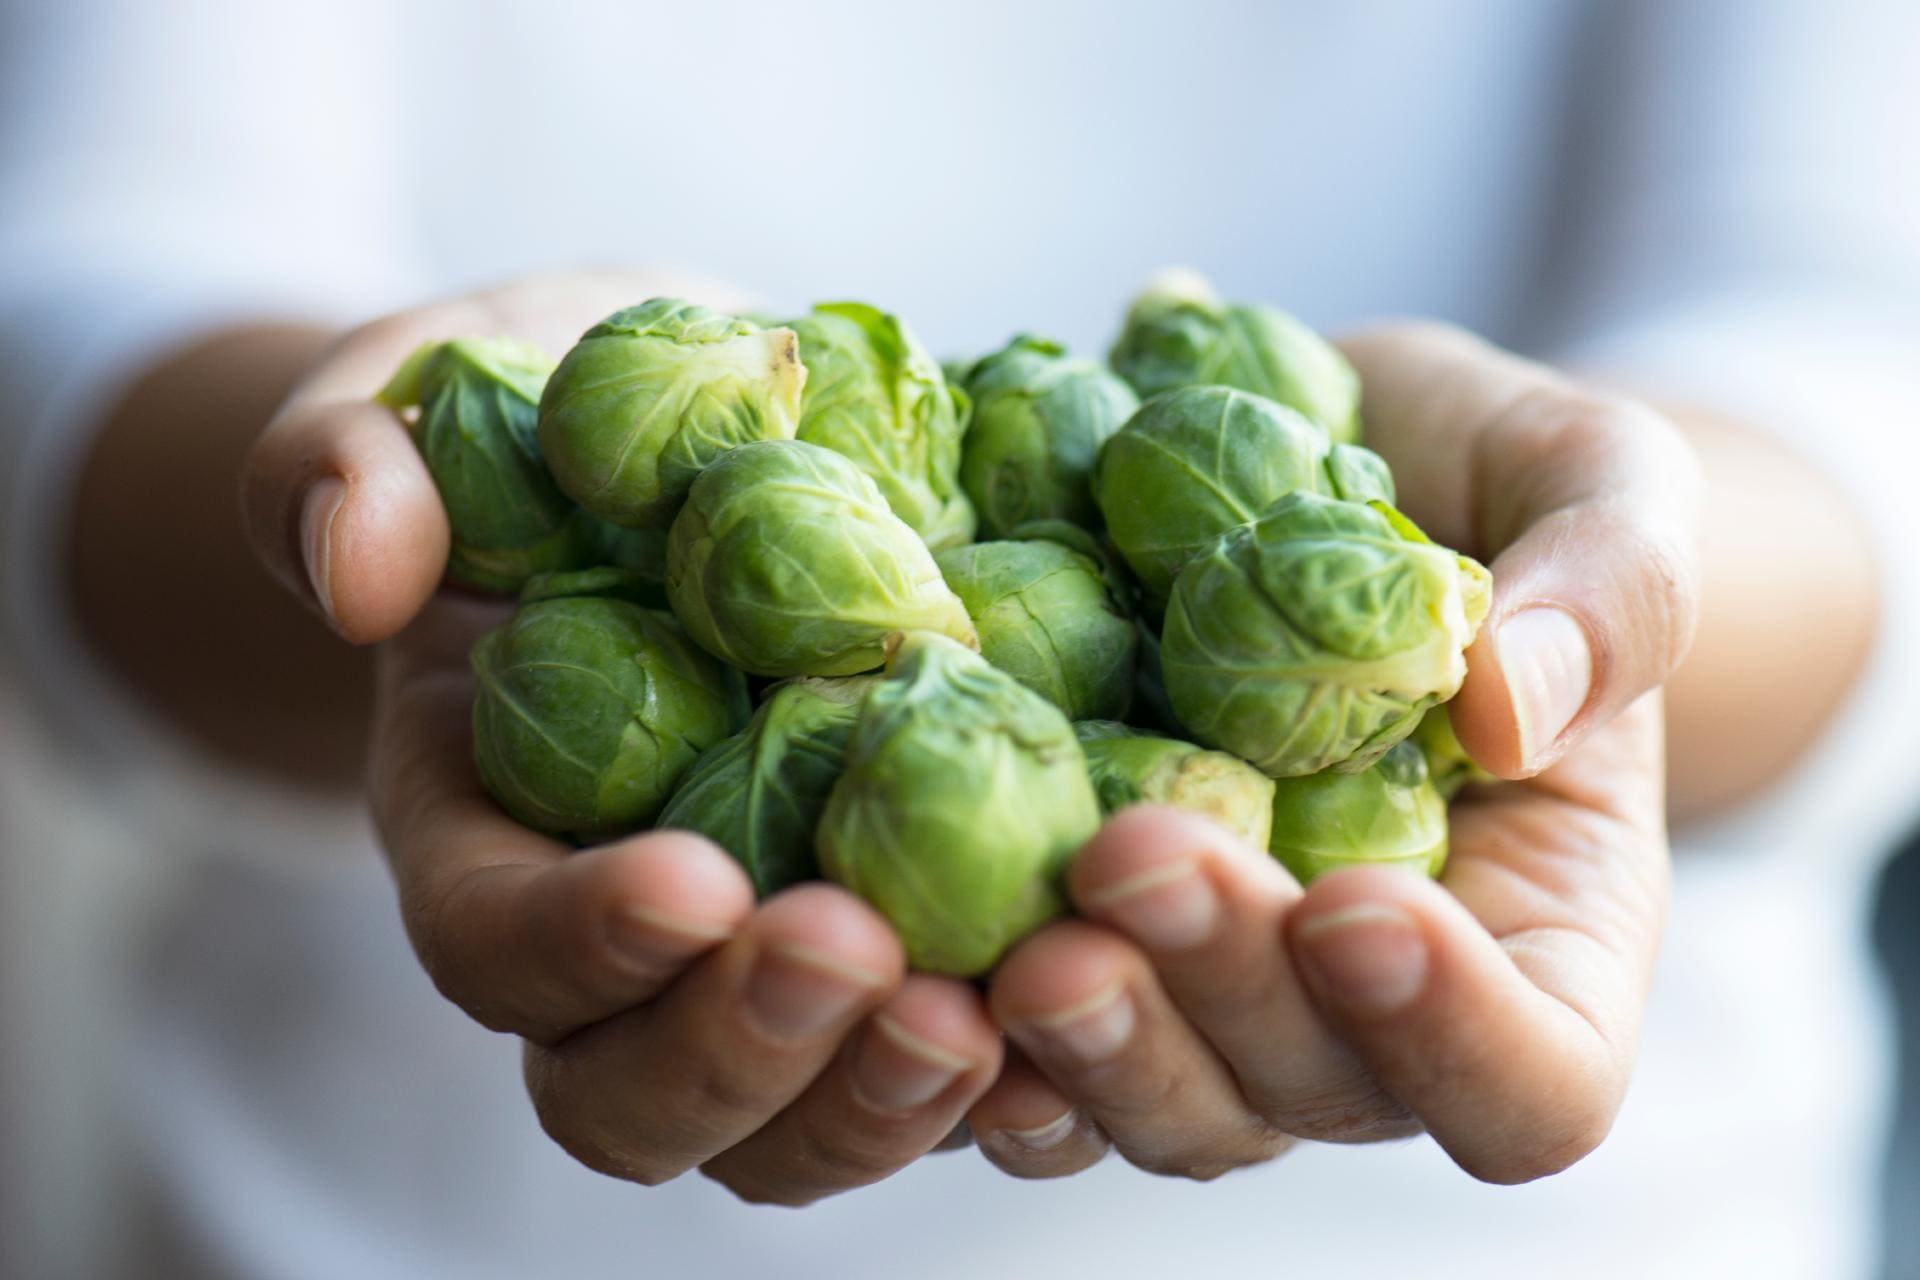 hands holding brussels sprouts ©iStock